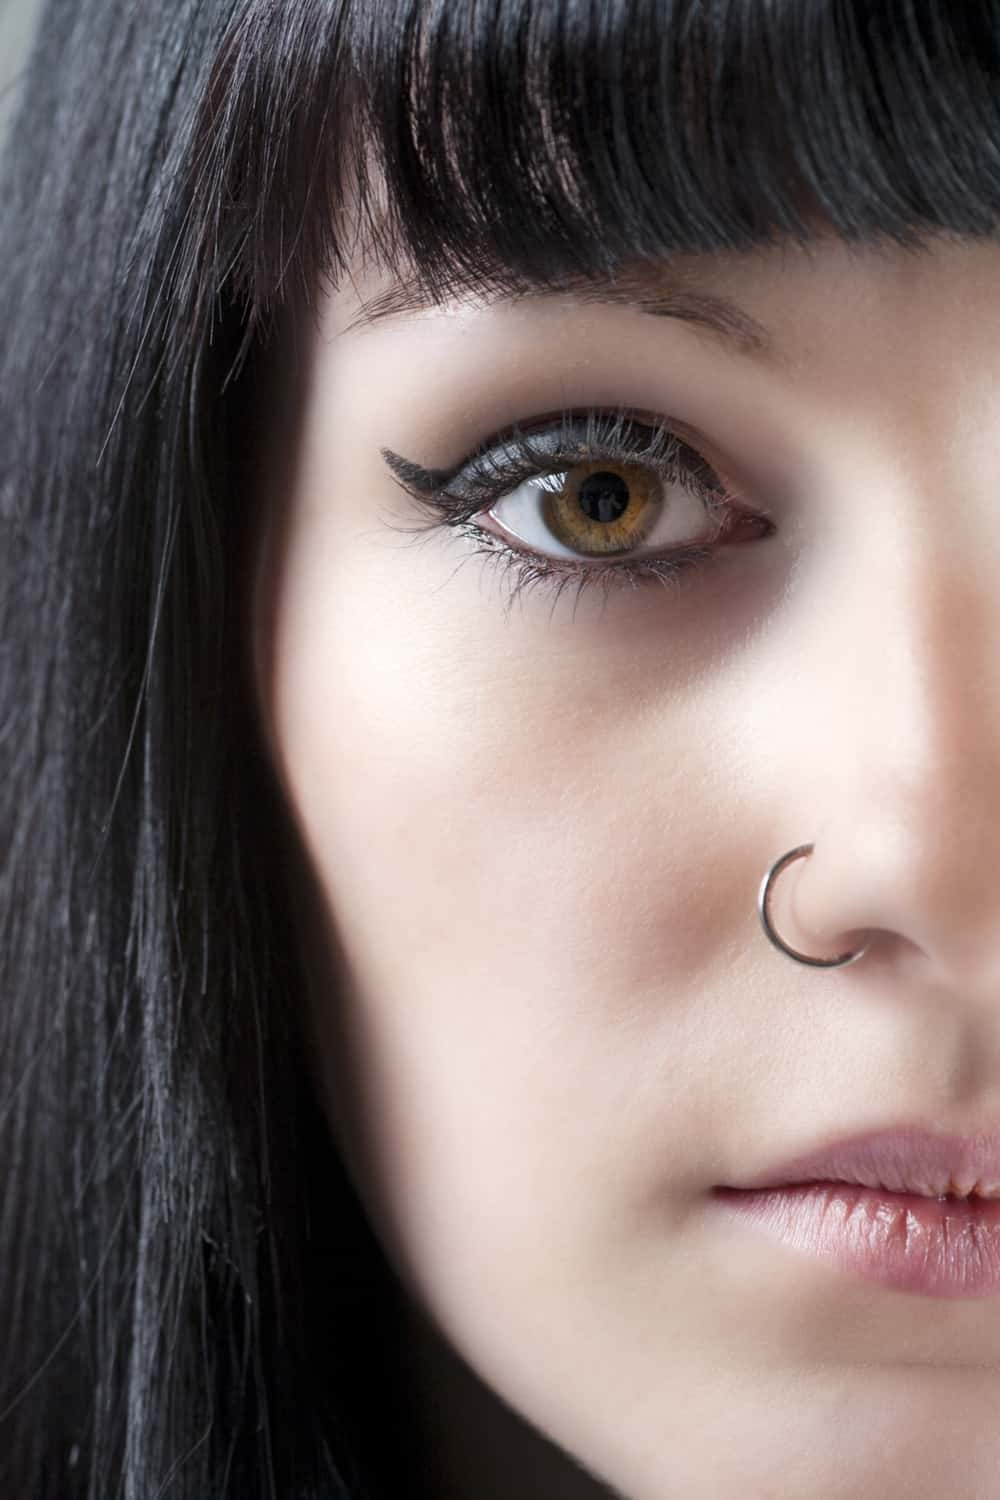 Nose Piercing in Modern Society